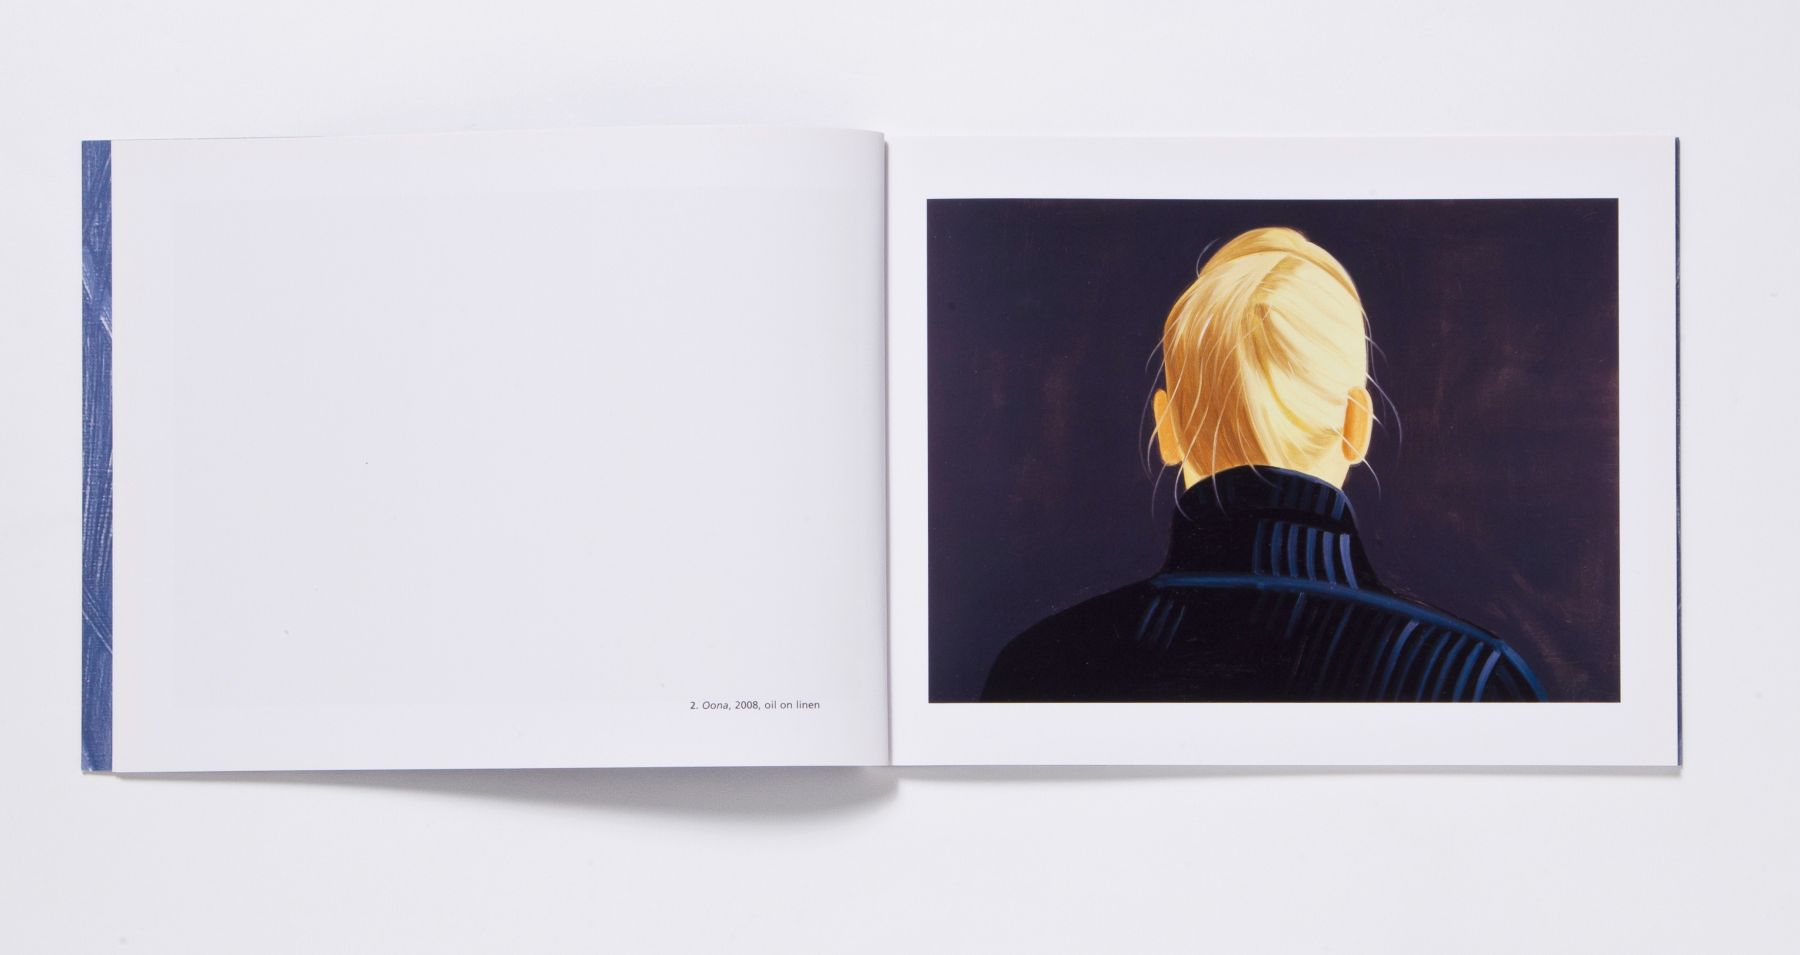 alex katz subject to reversal 2008 catalogue